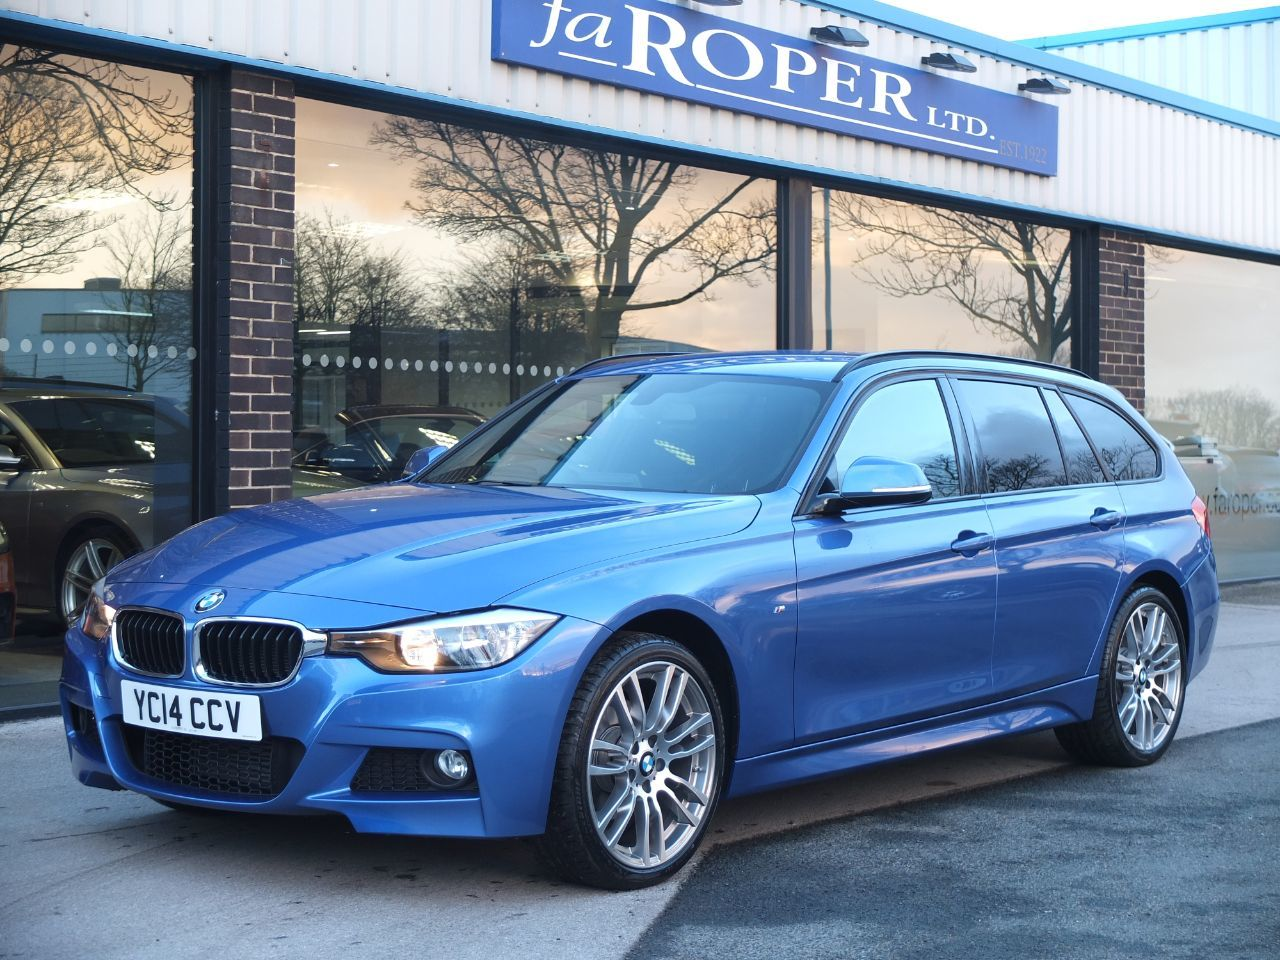 BMW 3 Series 2.0 320d xDrive M Sport Touring Auto +++Spec Estate Diesel Estoril Blue MetallicBMW 3 Series 2.0 320d xDrive M Sport Touring Auto +++Spec Estate Diesel Estoril Blue Metallic at fa Roper Ltd Bradford